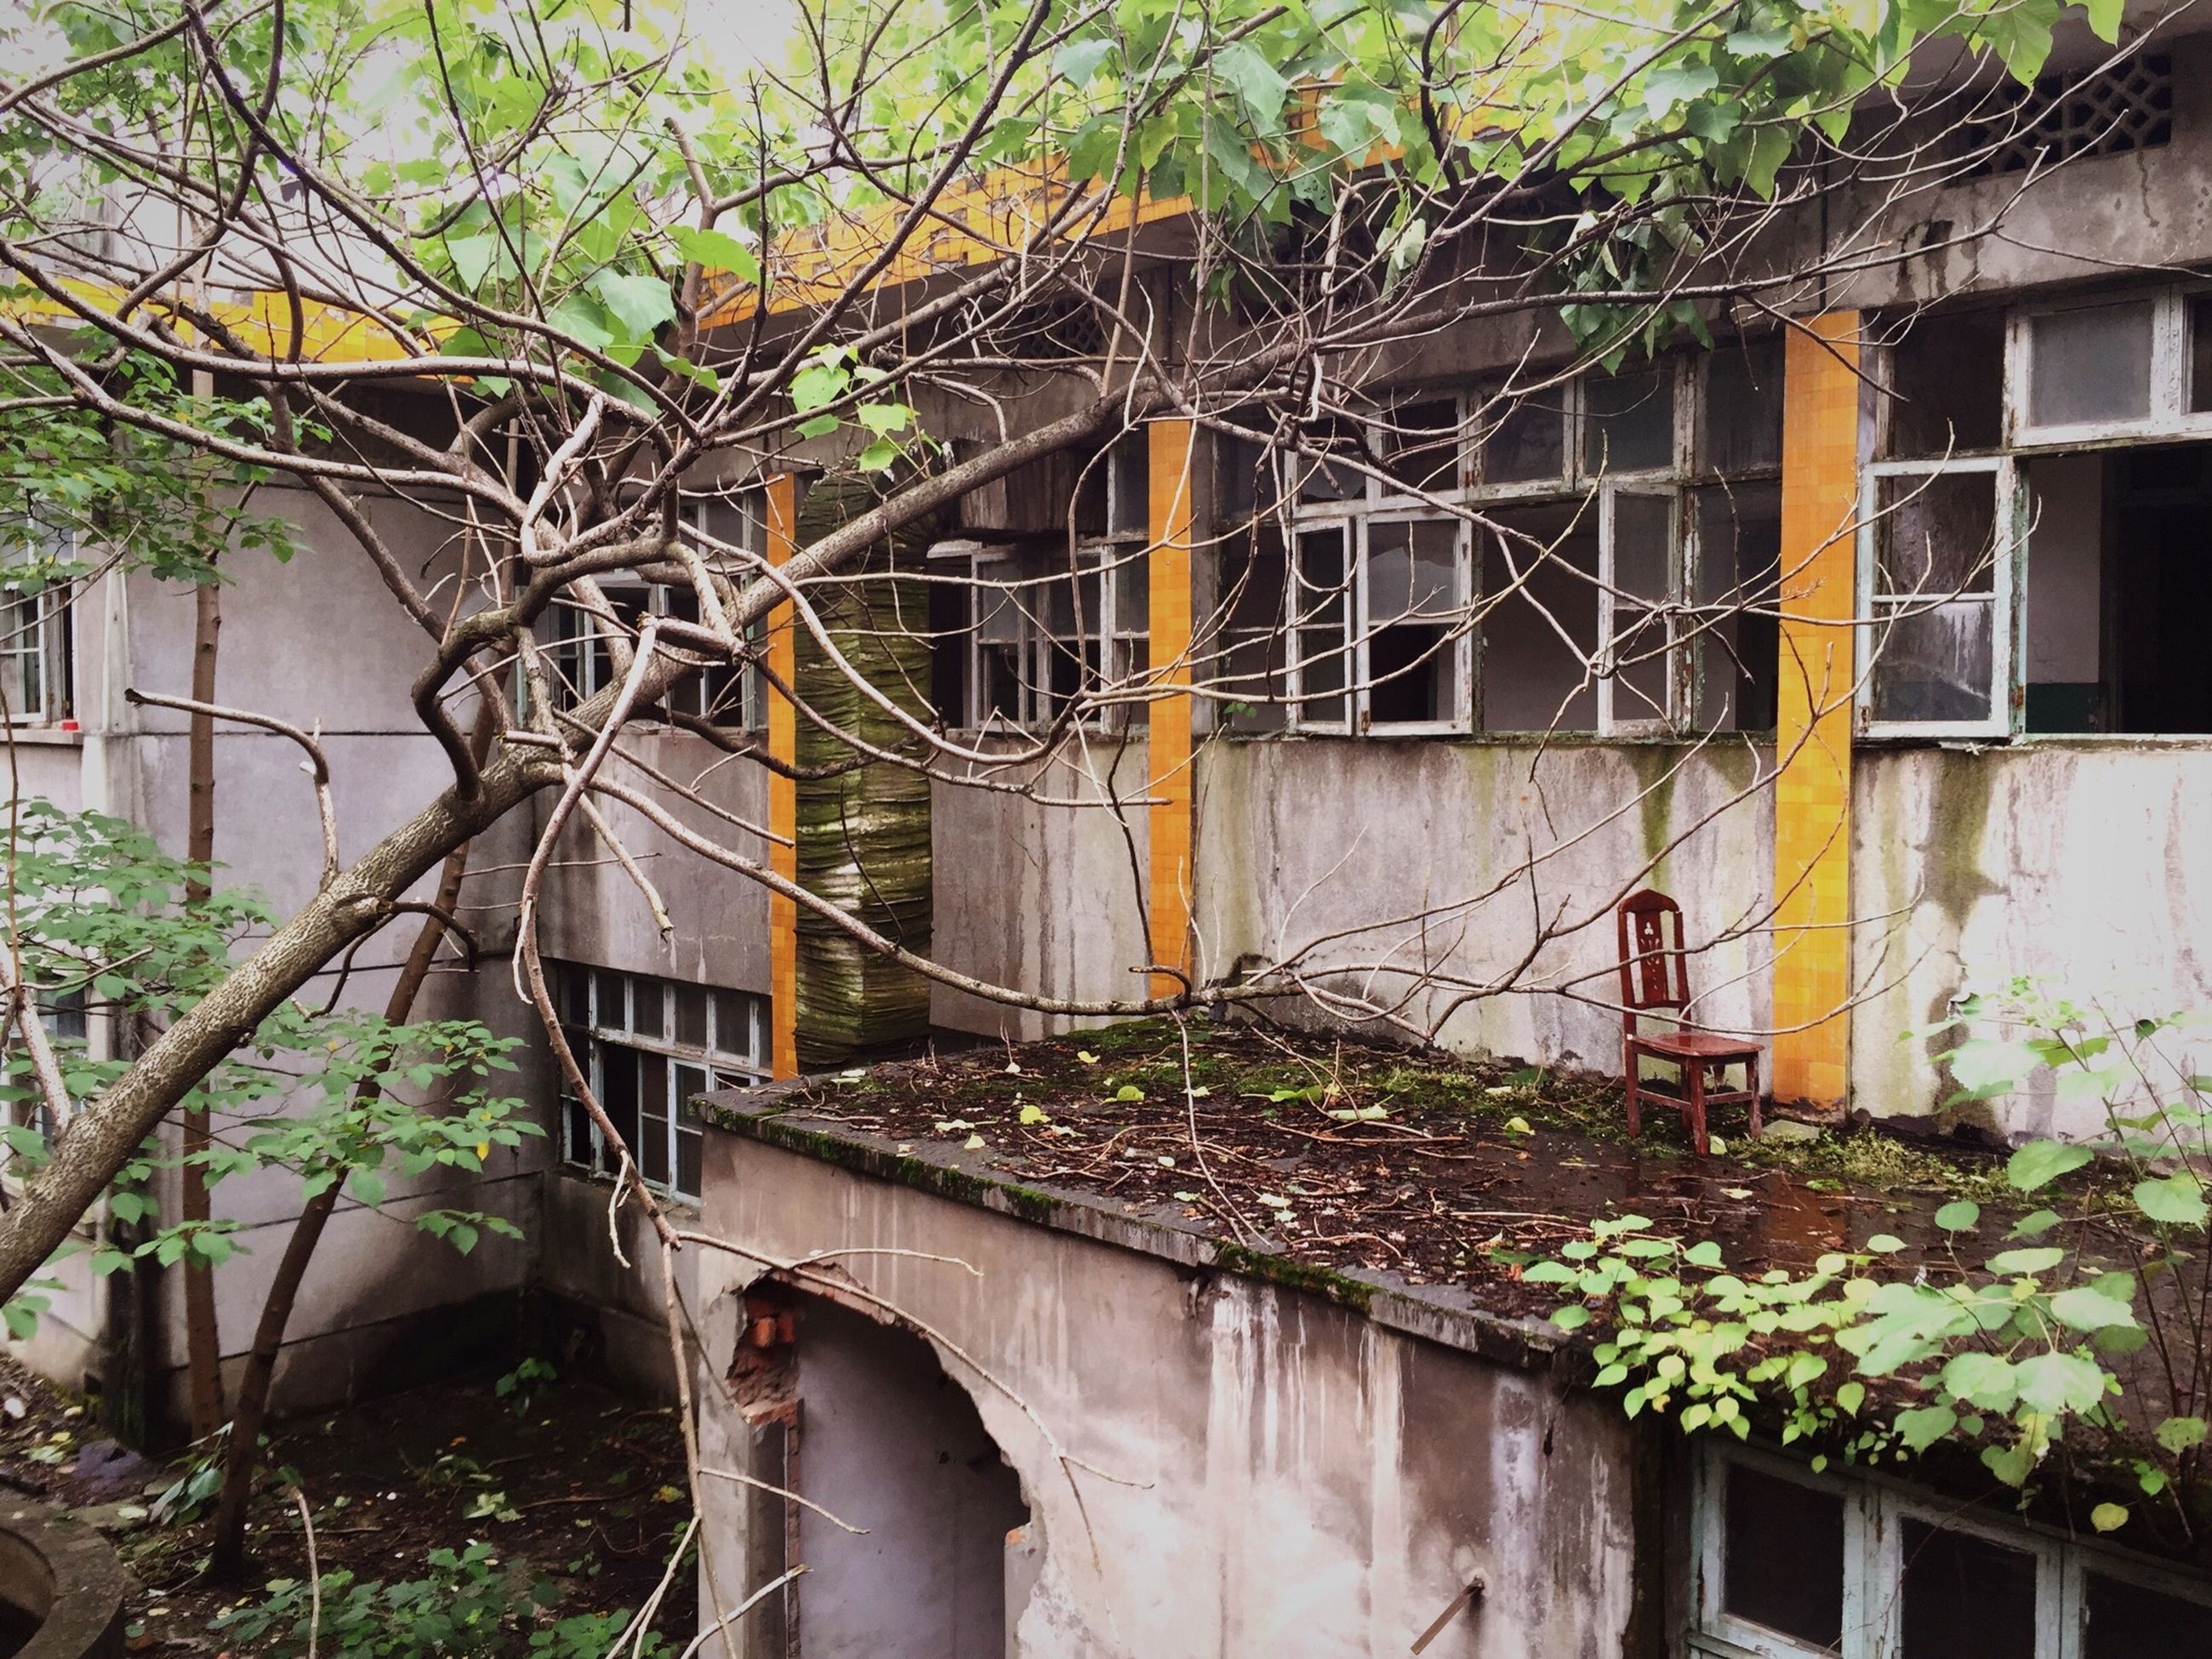 building exterior, architecture, built structure, house, plant, window, residential structure, residential building, growth, ivy, tree, creeper plant, building, potted plant, day, door, outdoors, no people, front or back yard, abandoned